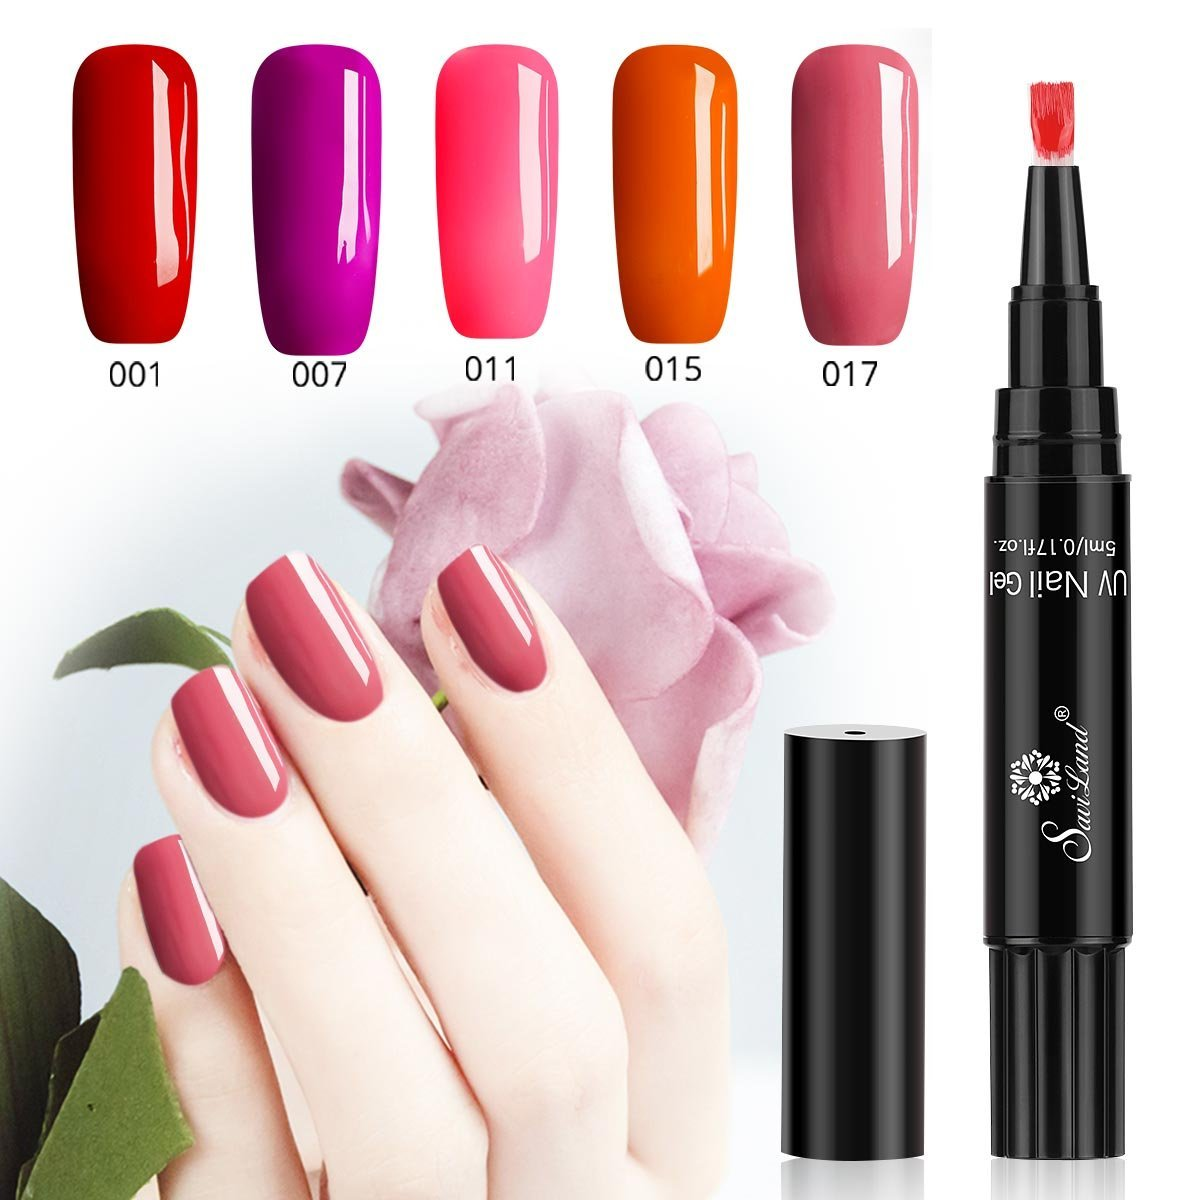 6c98318b46 One Step Gel Nail Polish Pen, No Base Top Coat Need, Saviland 3 in 1 Soak  Off UV LED Nail Varnish Nail Art Kit (Red series): Amazon.co.uk: Beauty